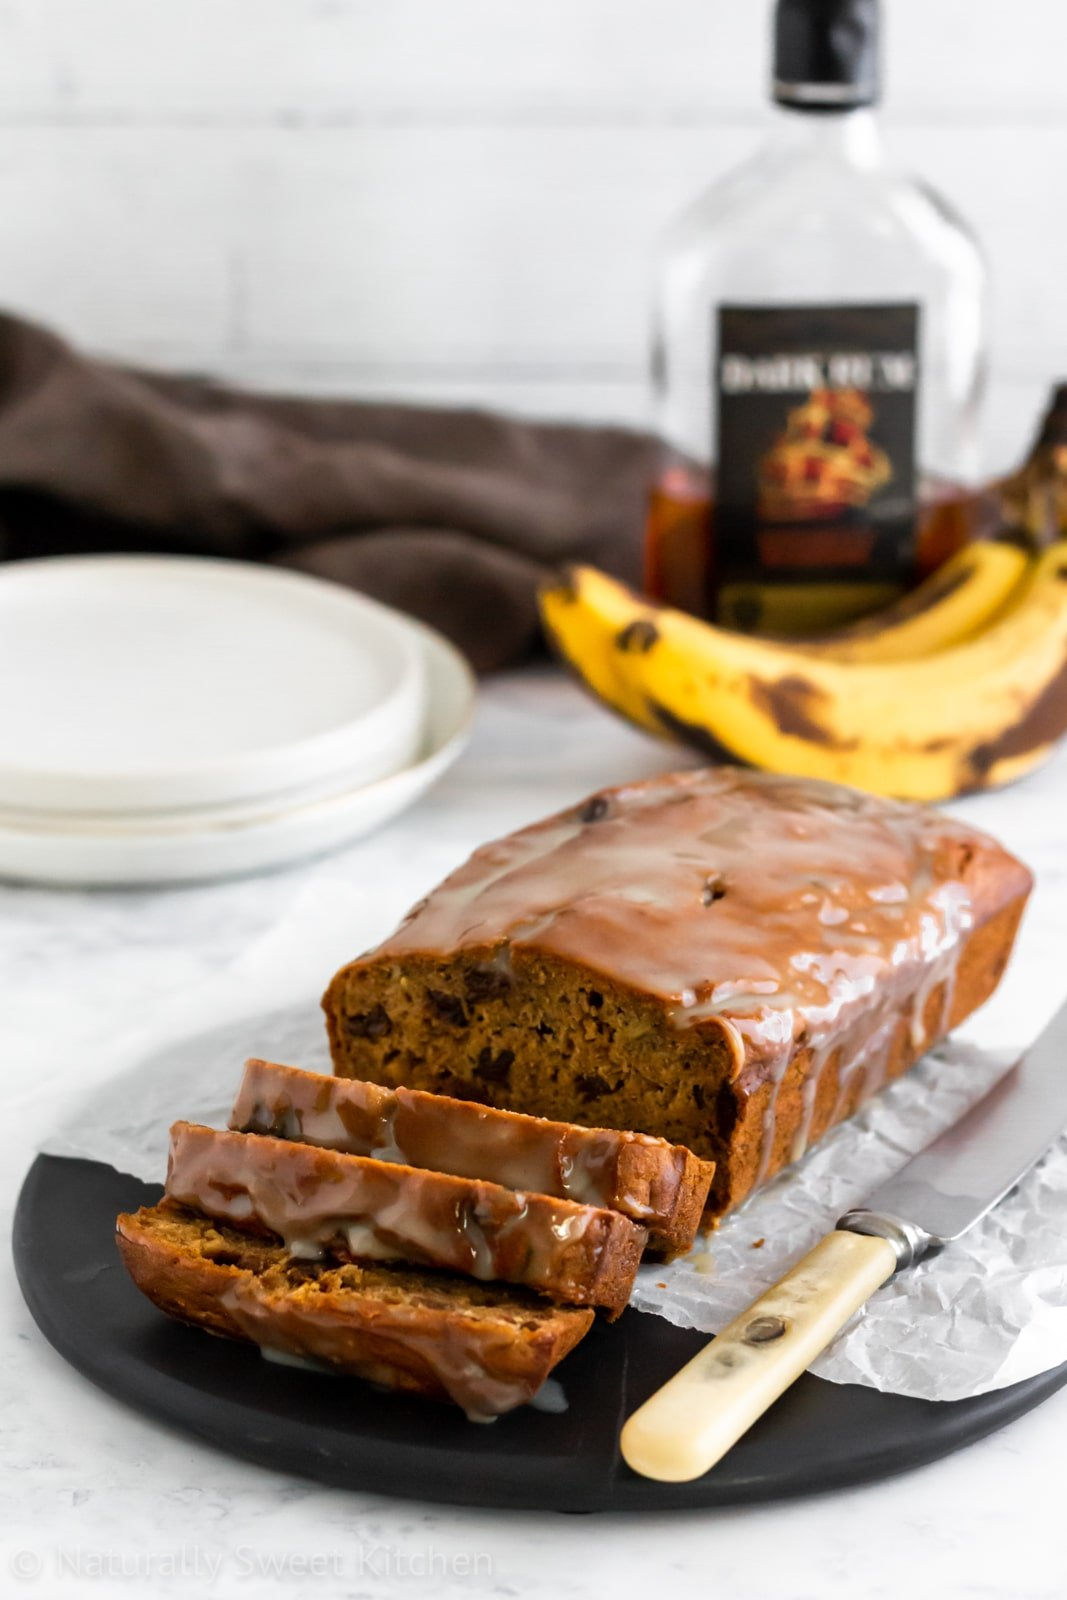 Refined sugar free rum and raisin banana bread.